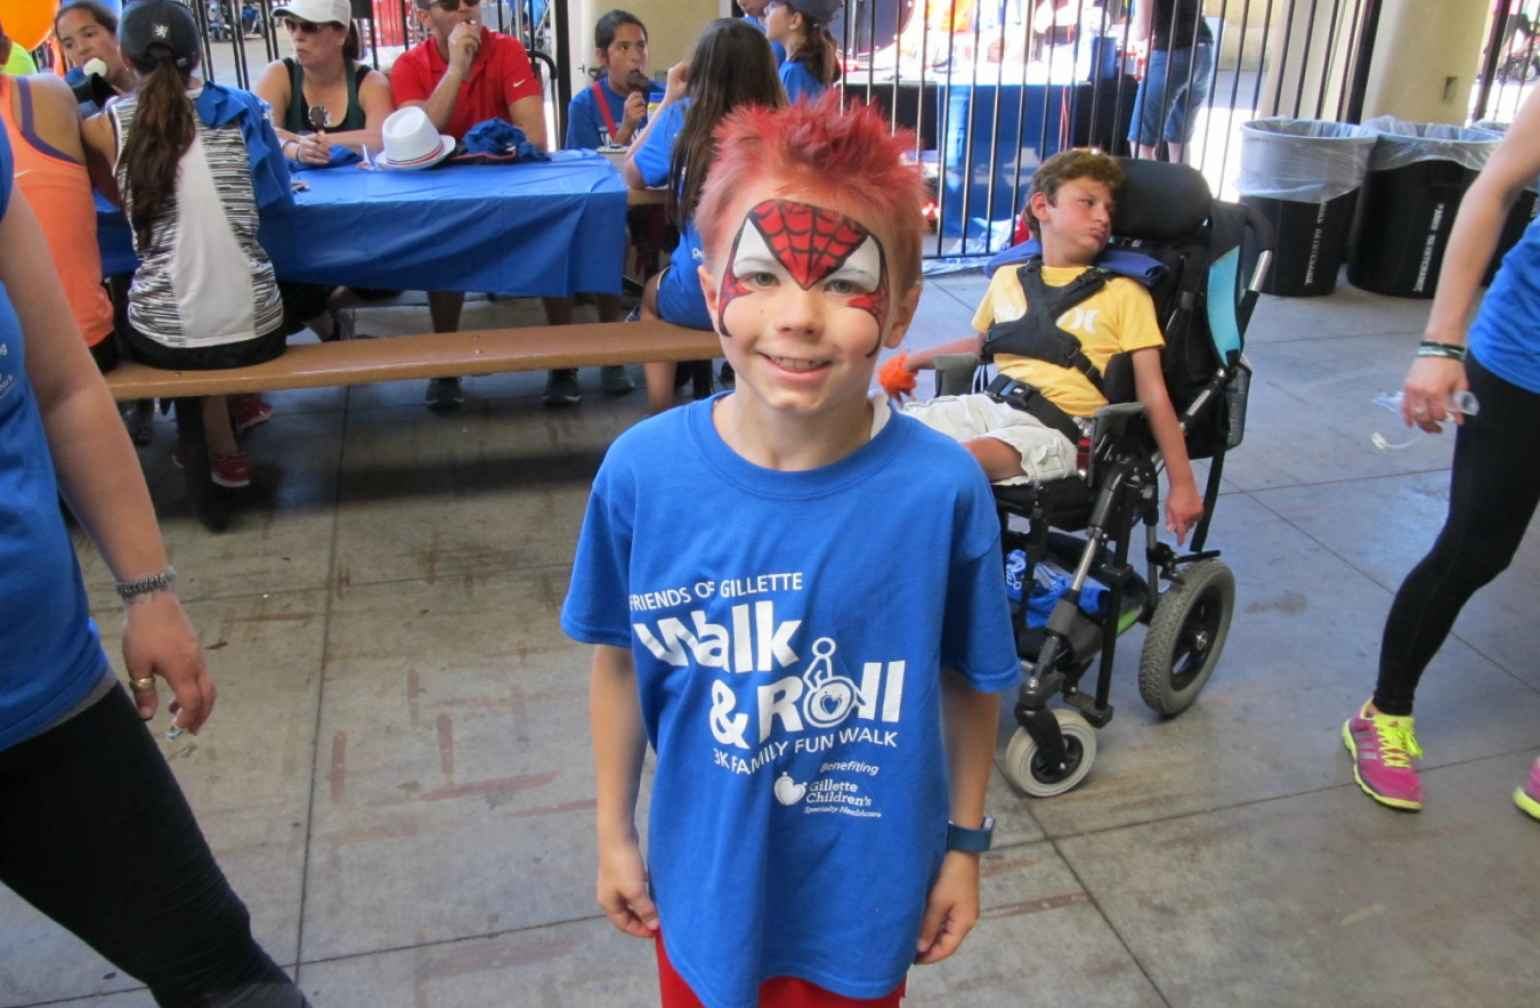 Walk and Roll boy with face paint